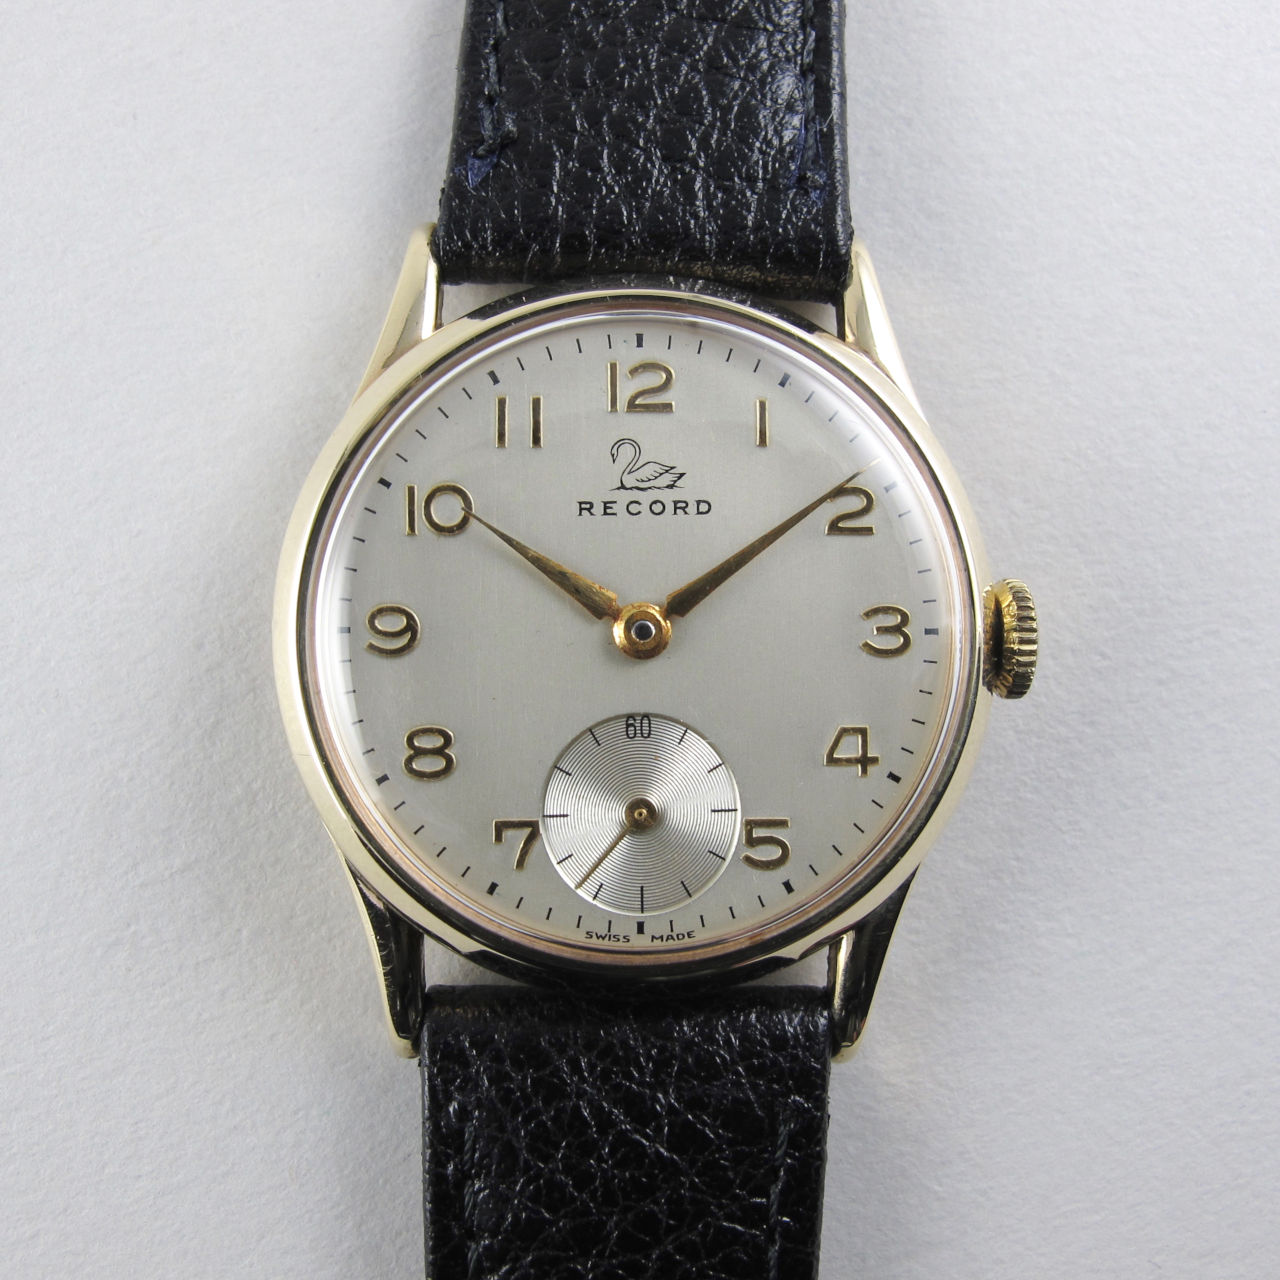 Record 9ct gold vintage wristwatch, hallmarked 1953